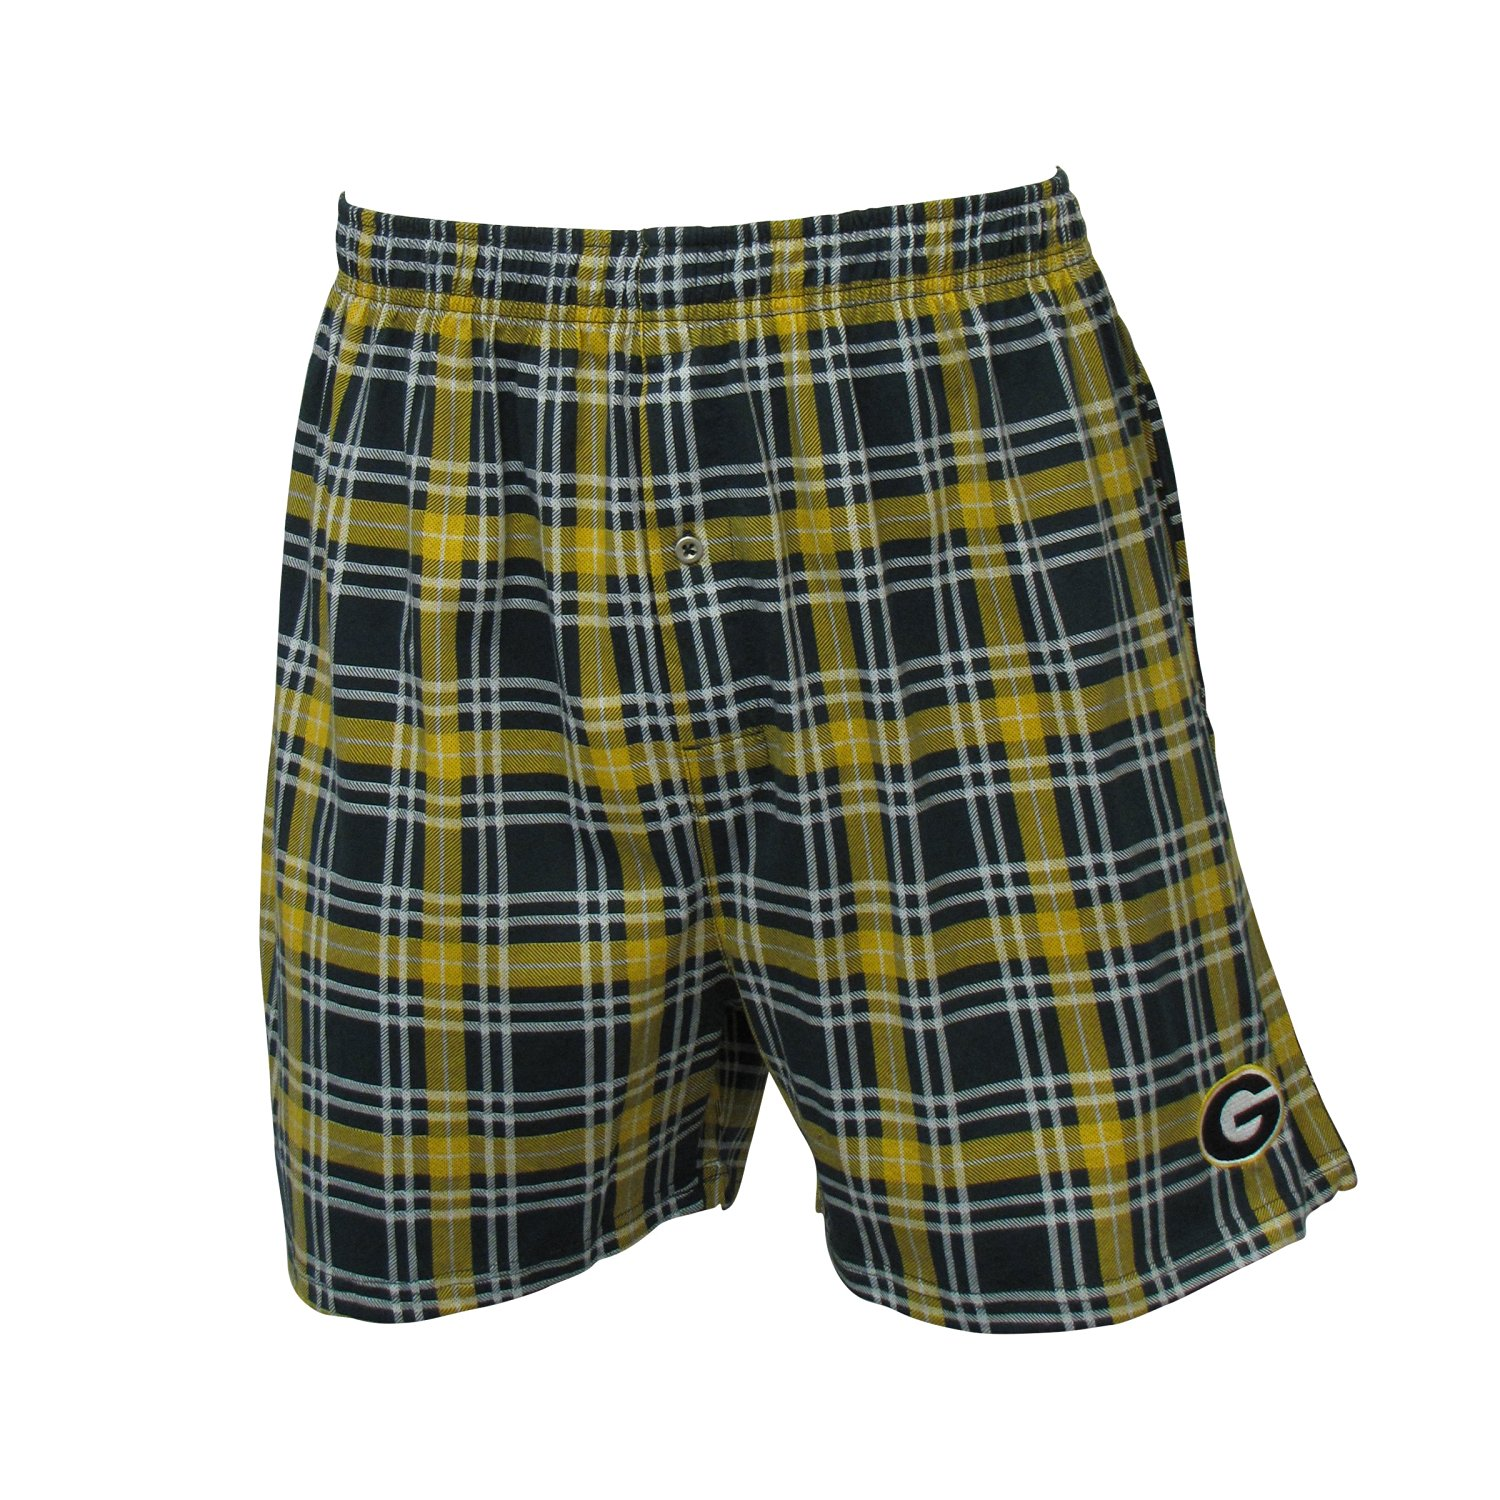 12508d17223c Cheap Knit Boxers Xxl, find Knit Boxers Xxl deals on line at Alibaba.com